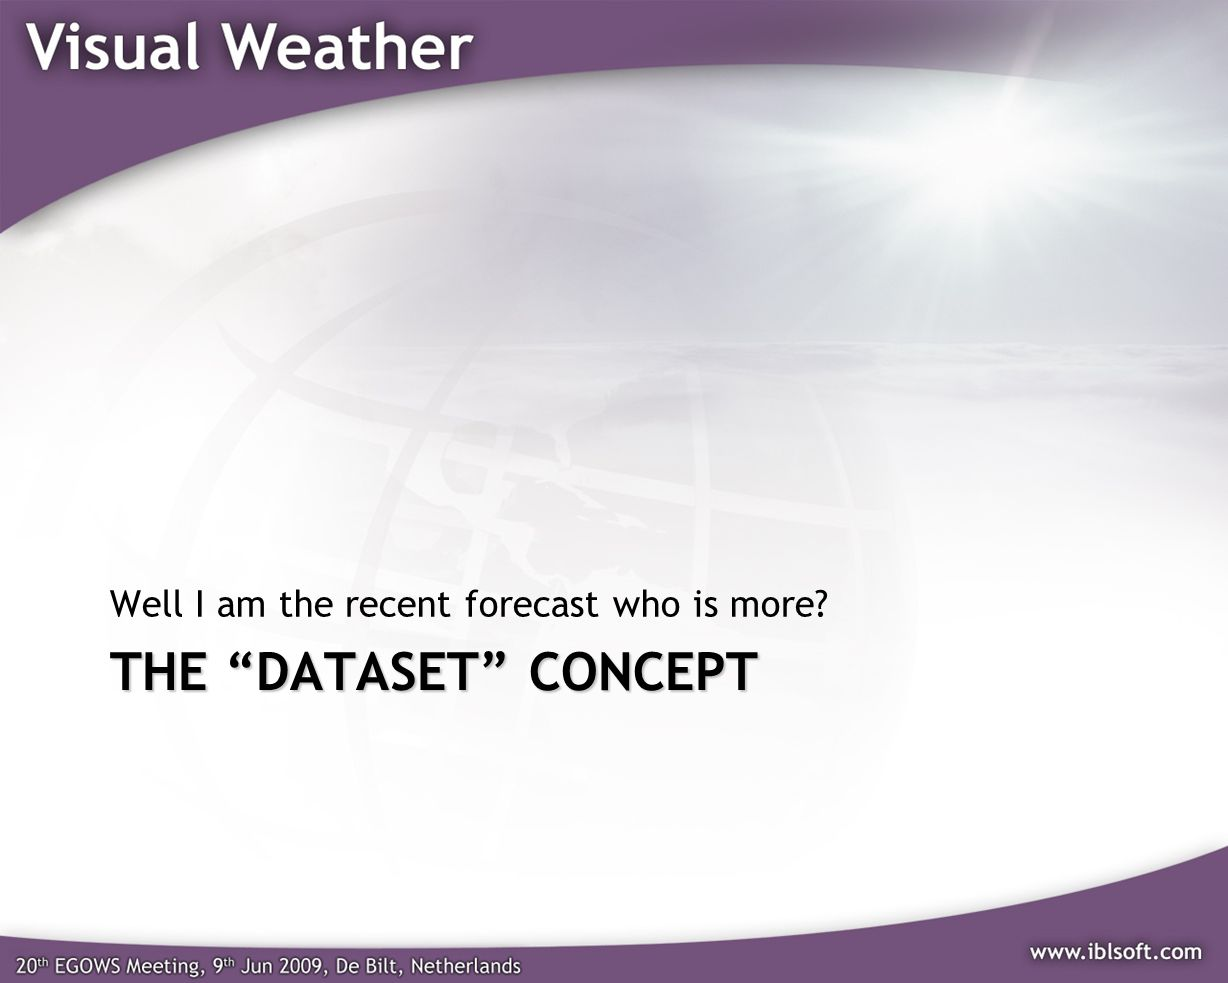 THE DATASET CONCEPT Well I am the recent forecast who is more?